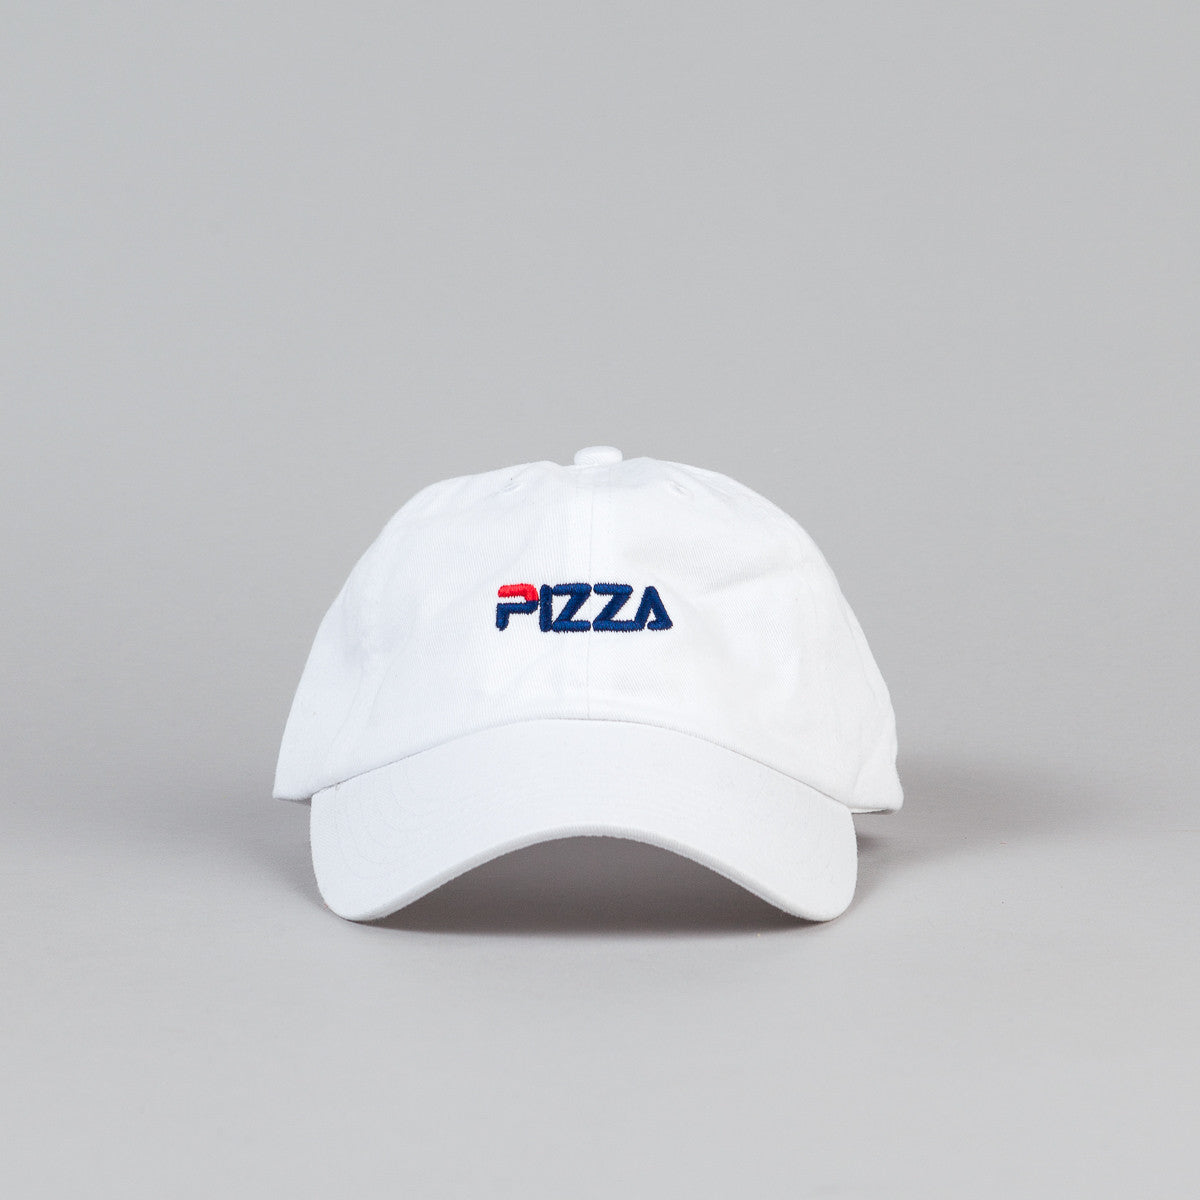 Pizza Skateboards Fizza Delivery Boy Cap - White